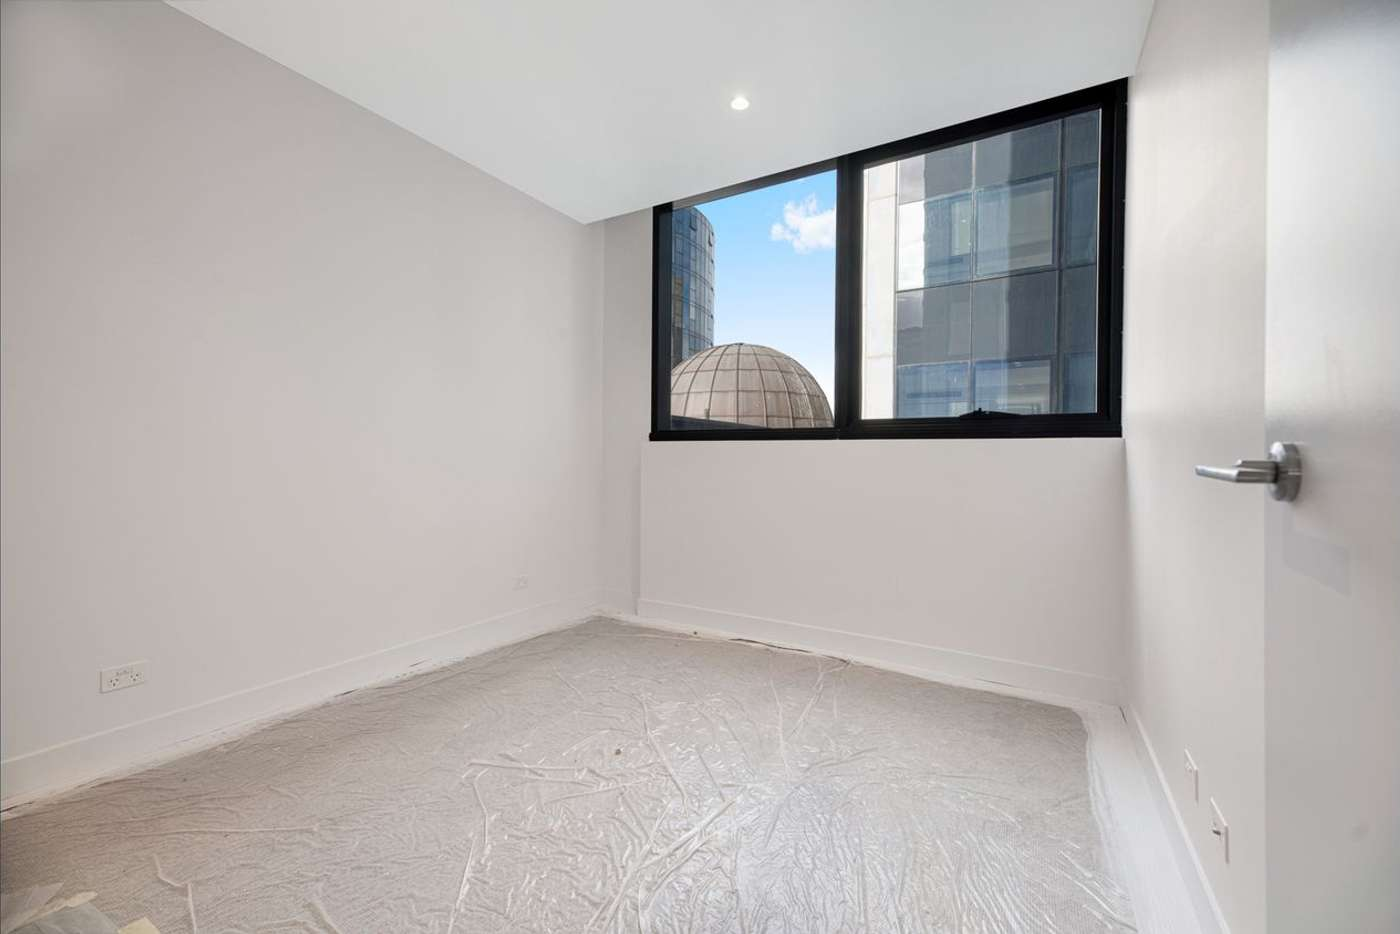 Fifth view of Homely apartment listing, 304/649 Chapel Street, South Yarra VIC 3141